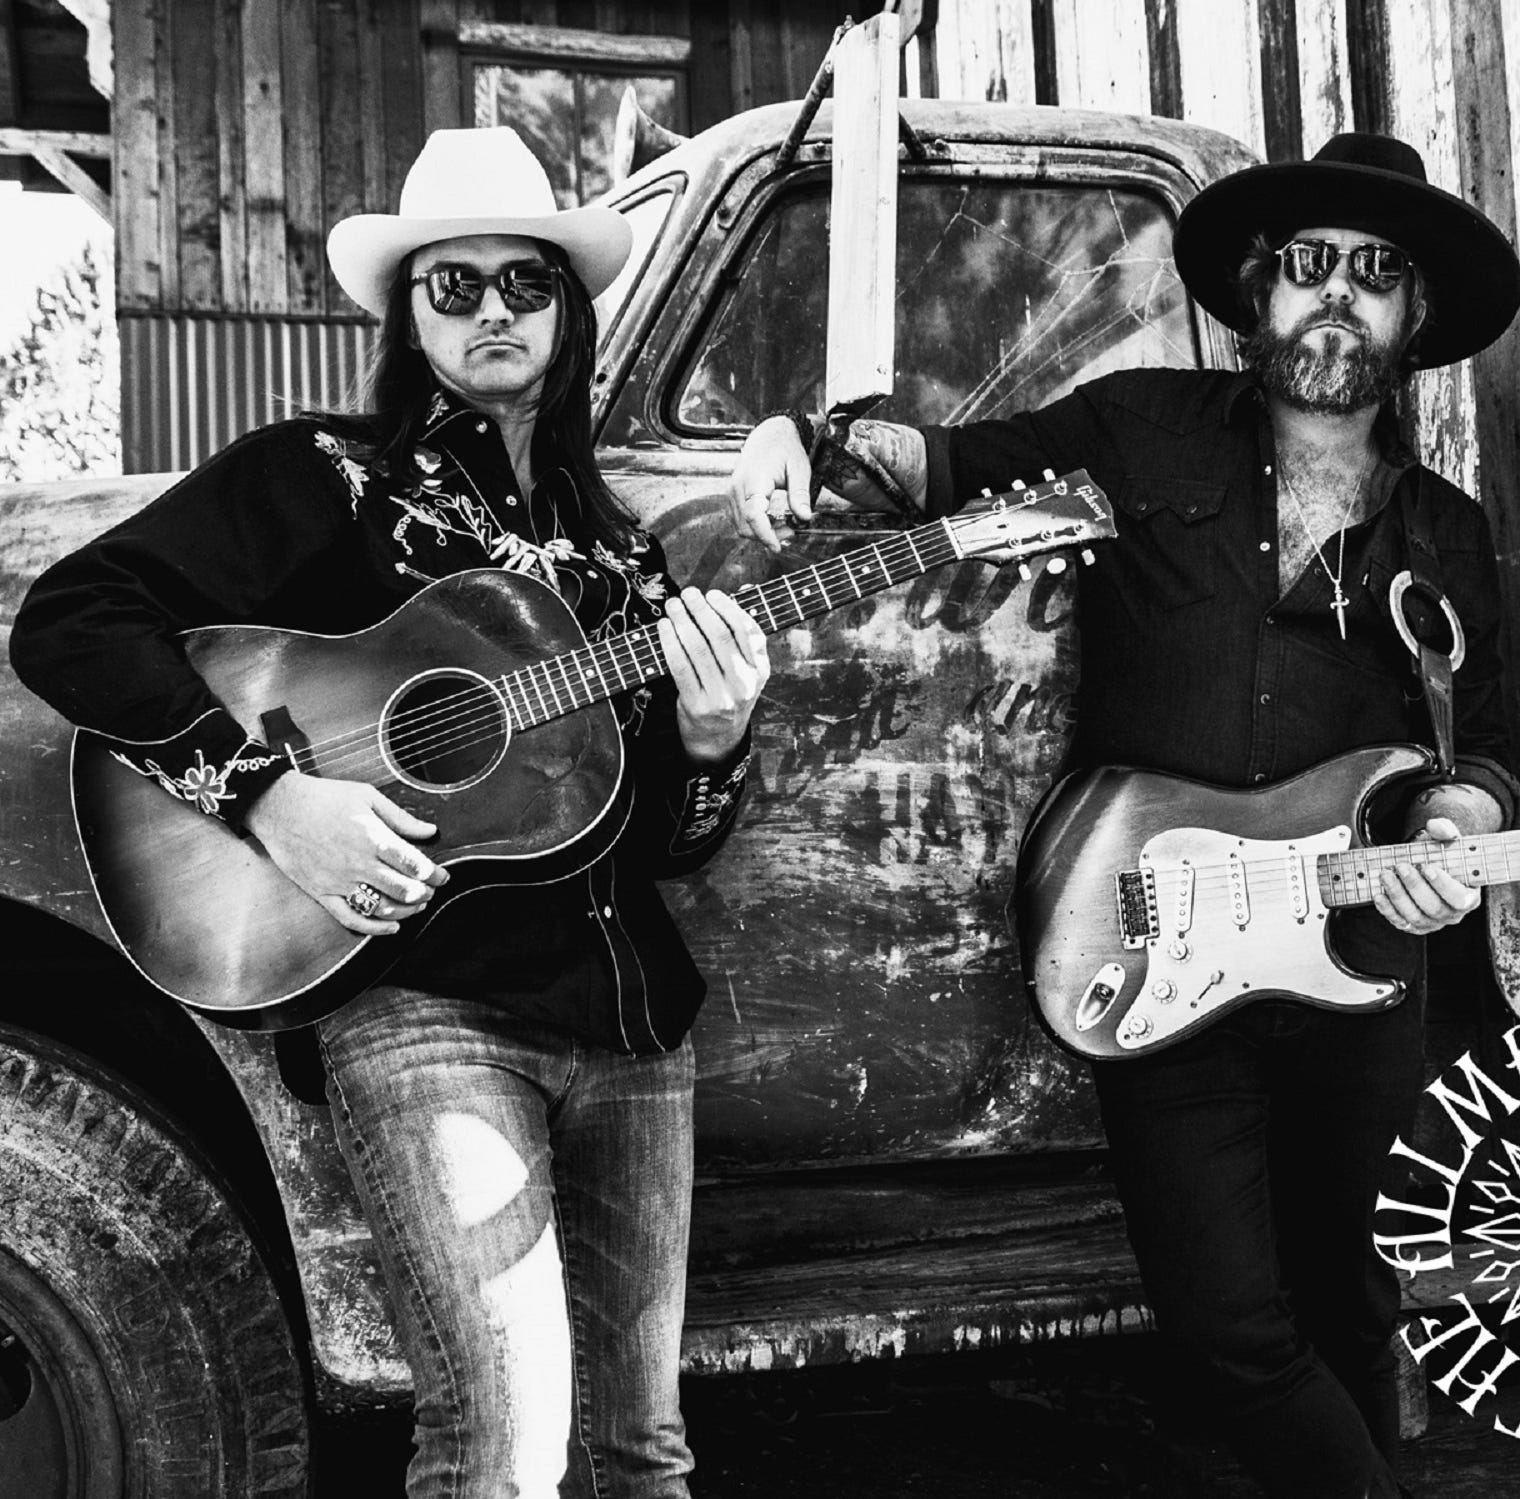 Allman Betts Band continues famous families' rock legacy